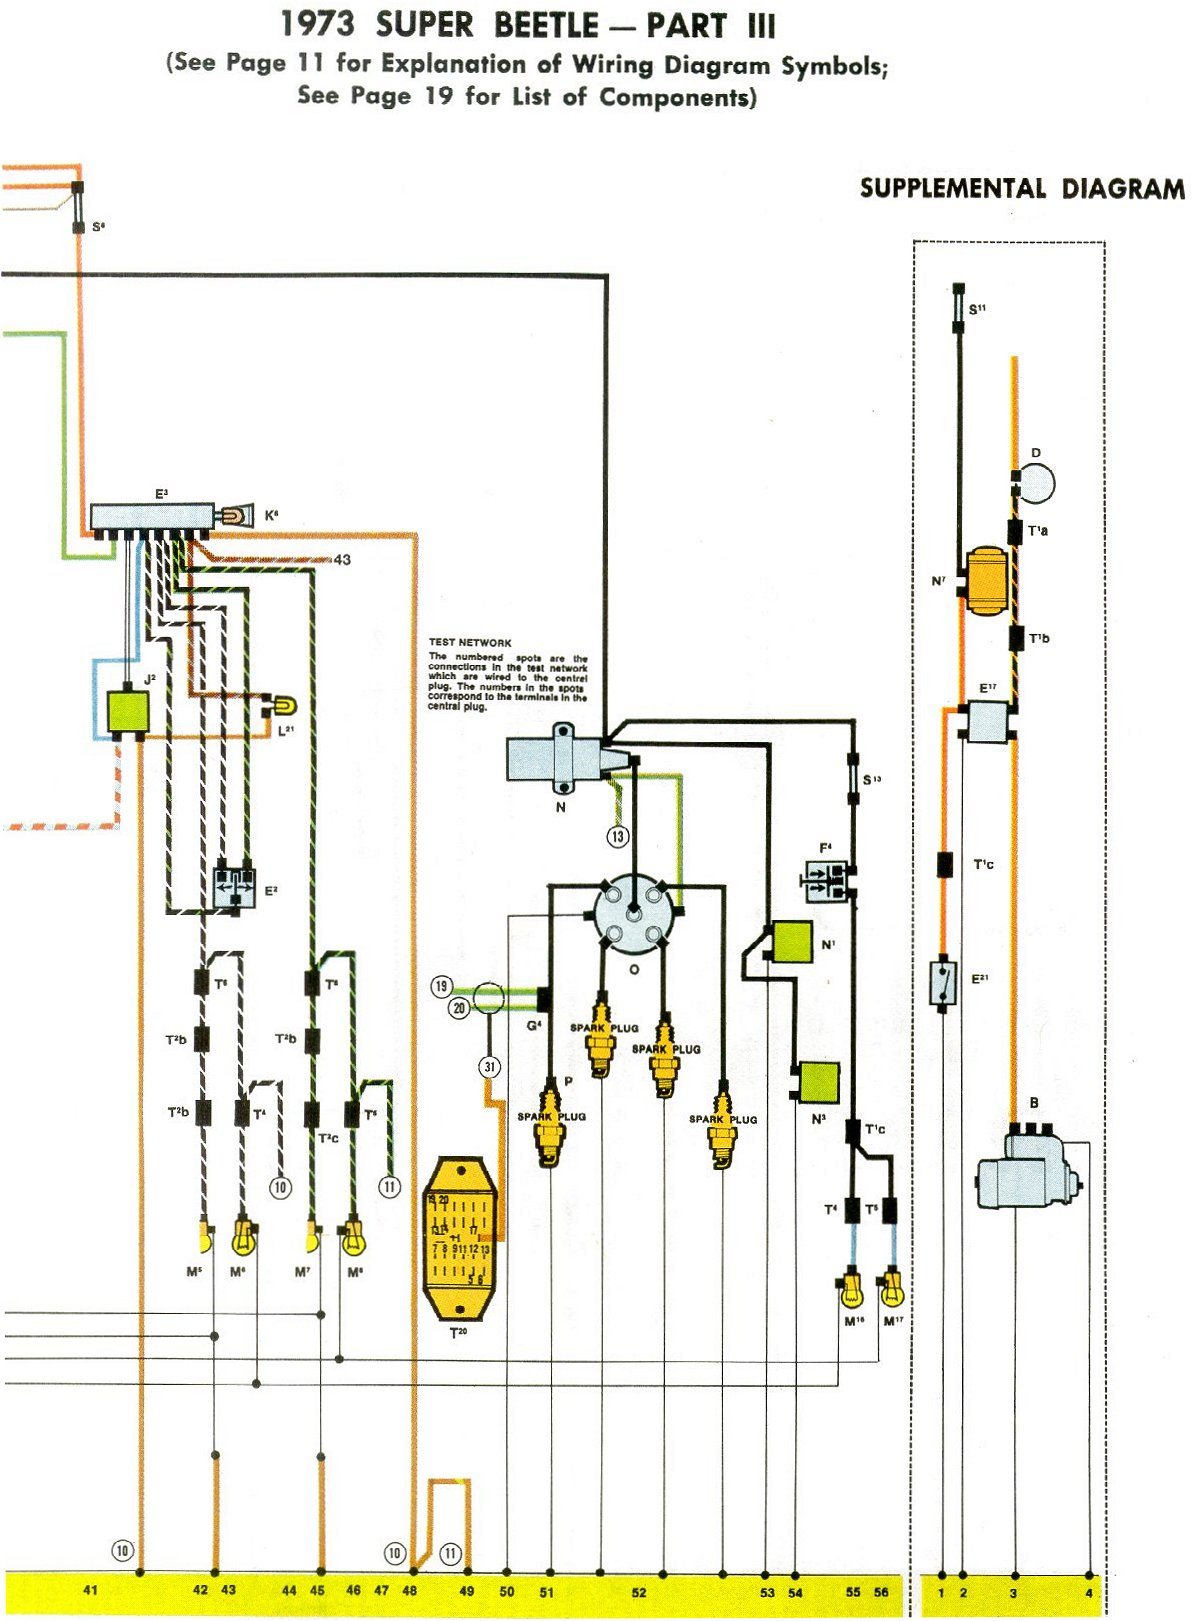 wiring diagram beetle 1973 1973 super beetle wiring diagram | thegoldenbug.com starter wiring diagram beetle 1973